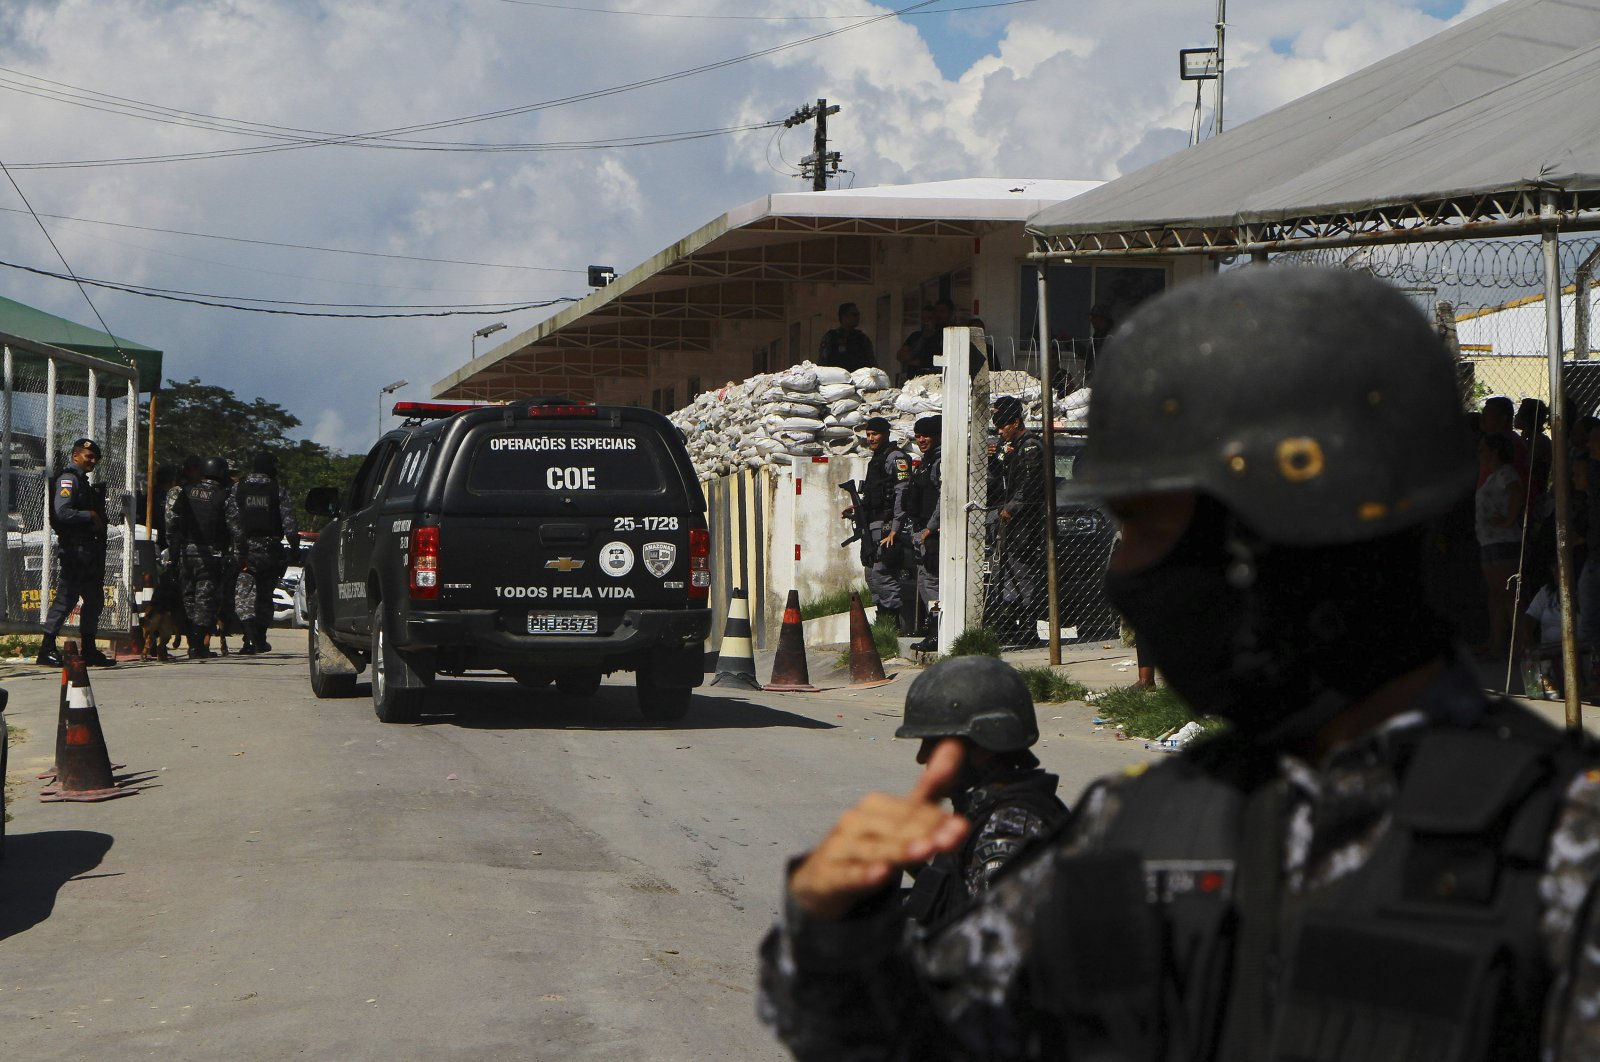 Police guard the entrance to the Anisio Jobim Prison Complex in Manaus in the northern state of Amazonas, Brazil, Sunday, May 26, 2019. (AP Photo)